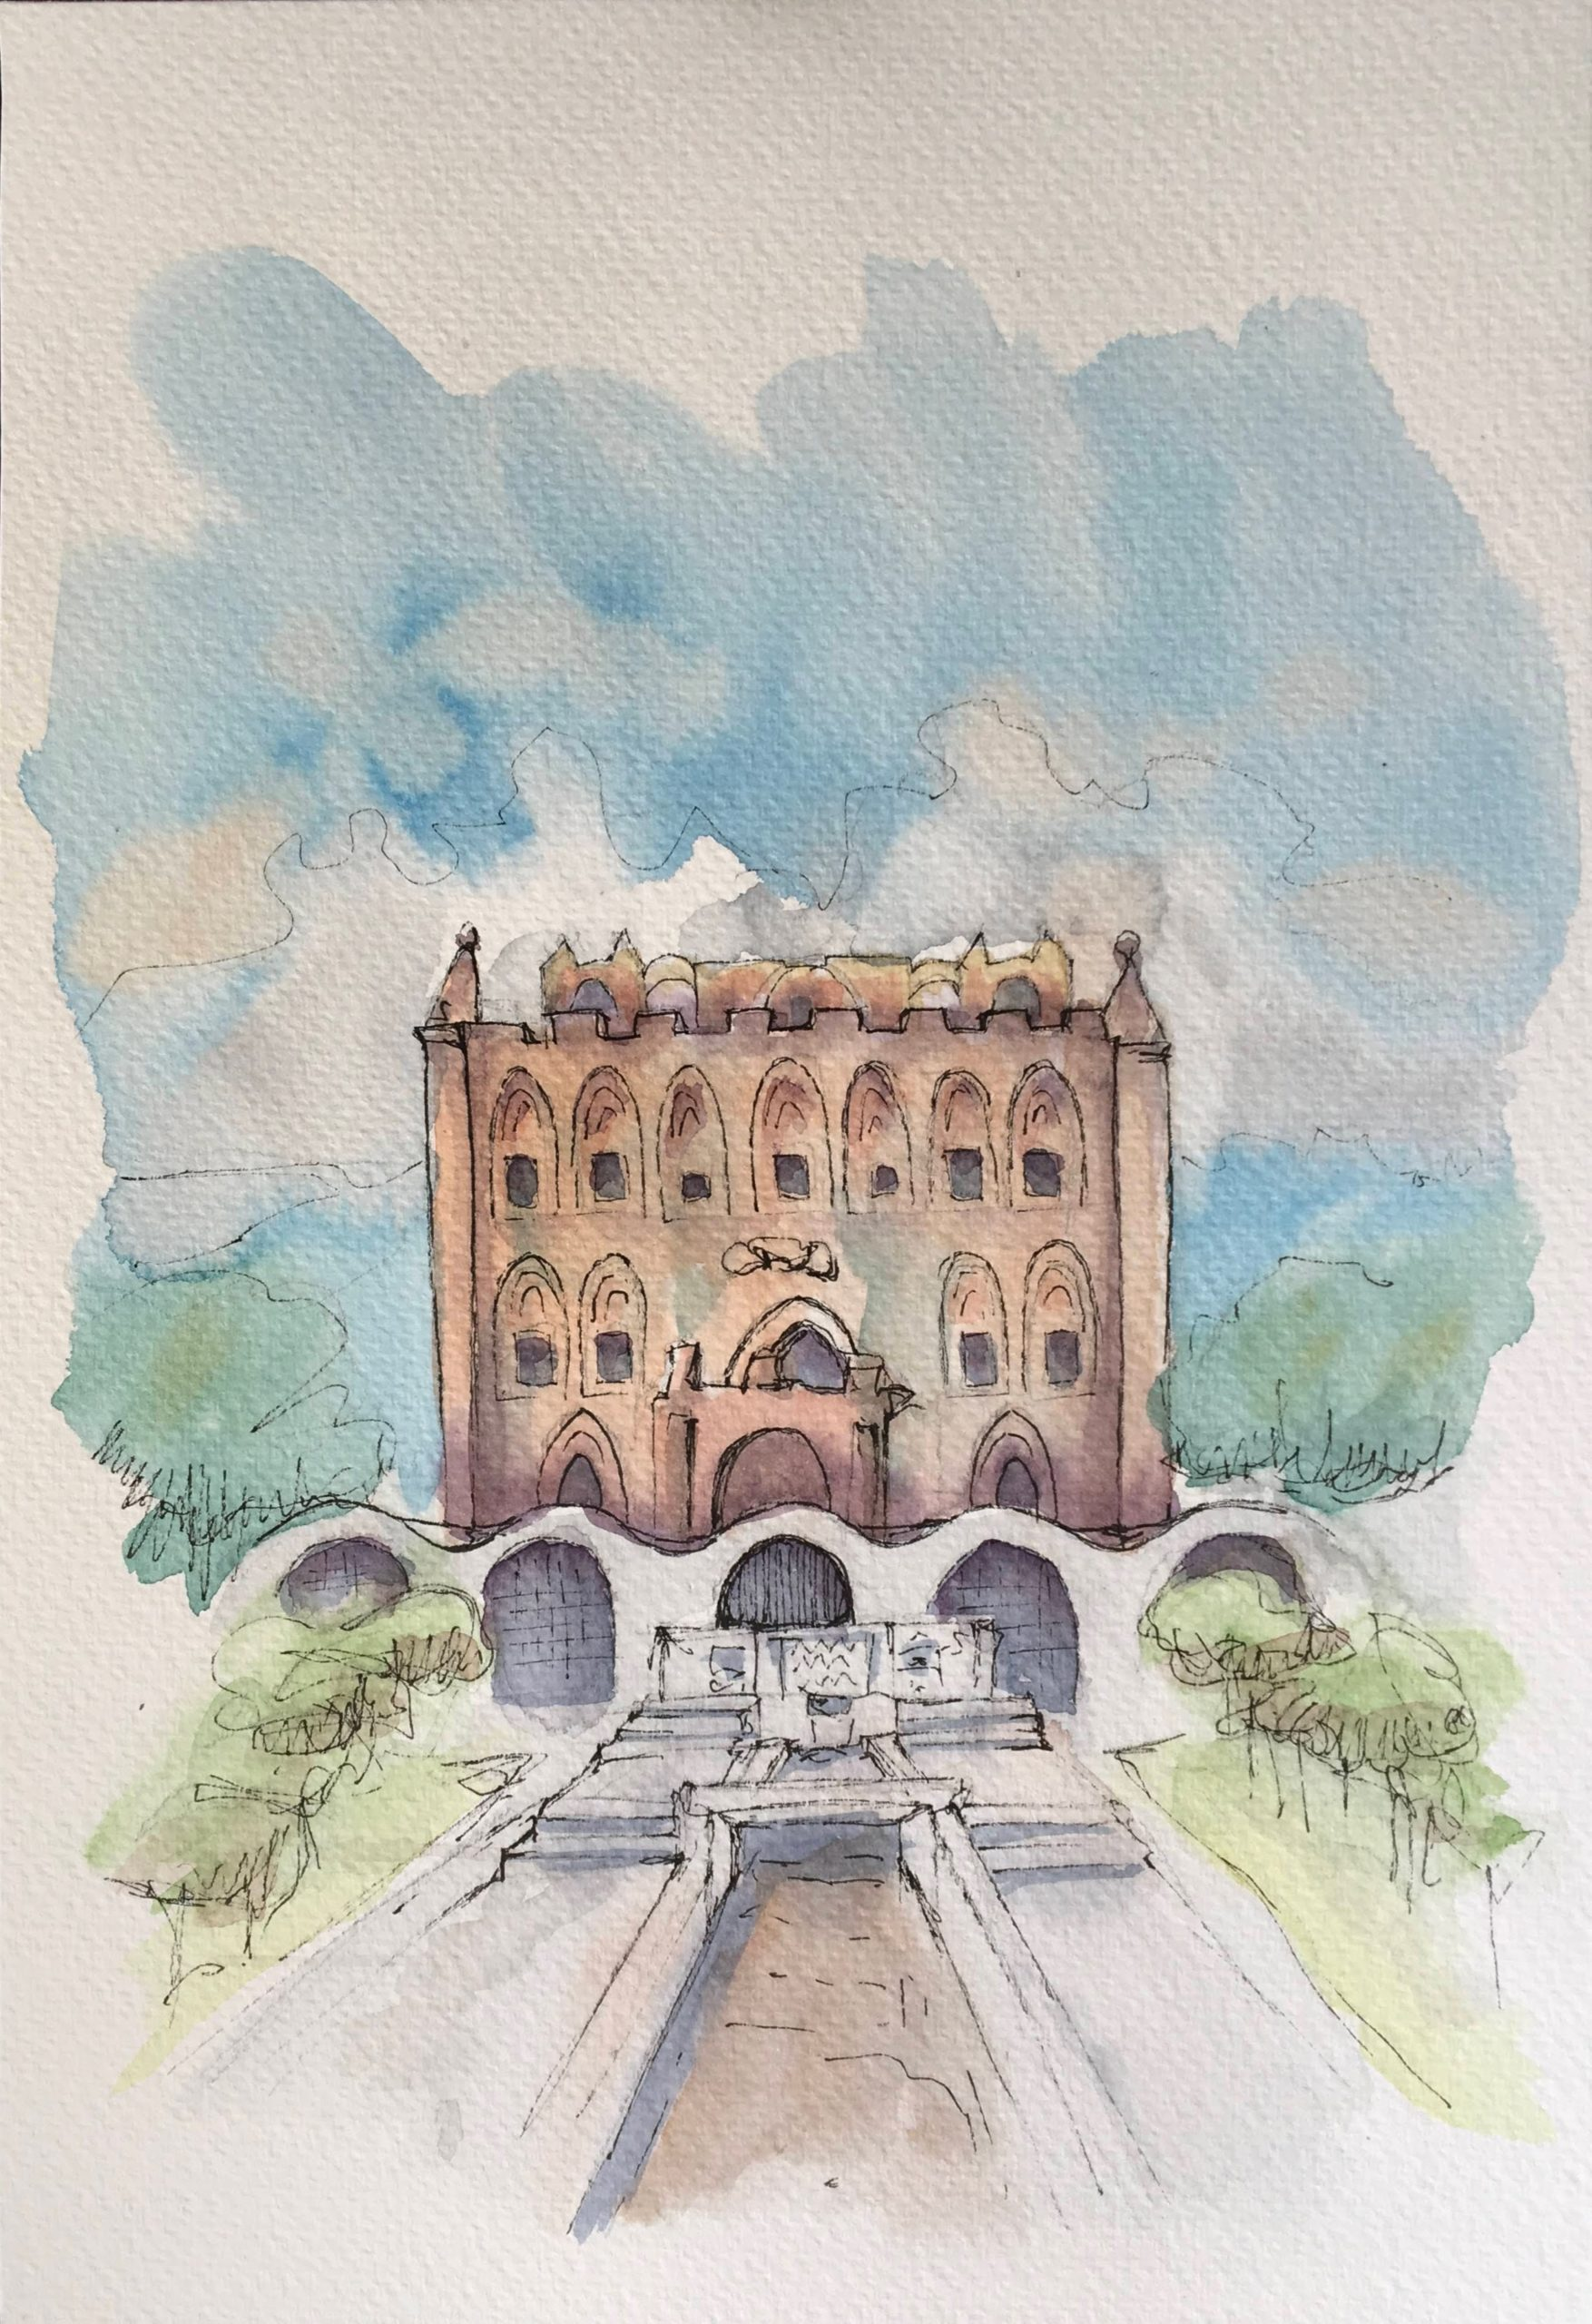 Painting of the Zisa Castle in Palermo